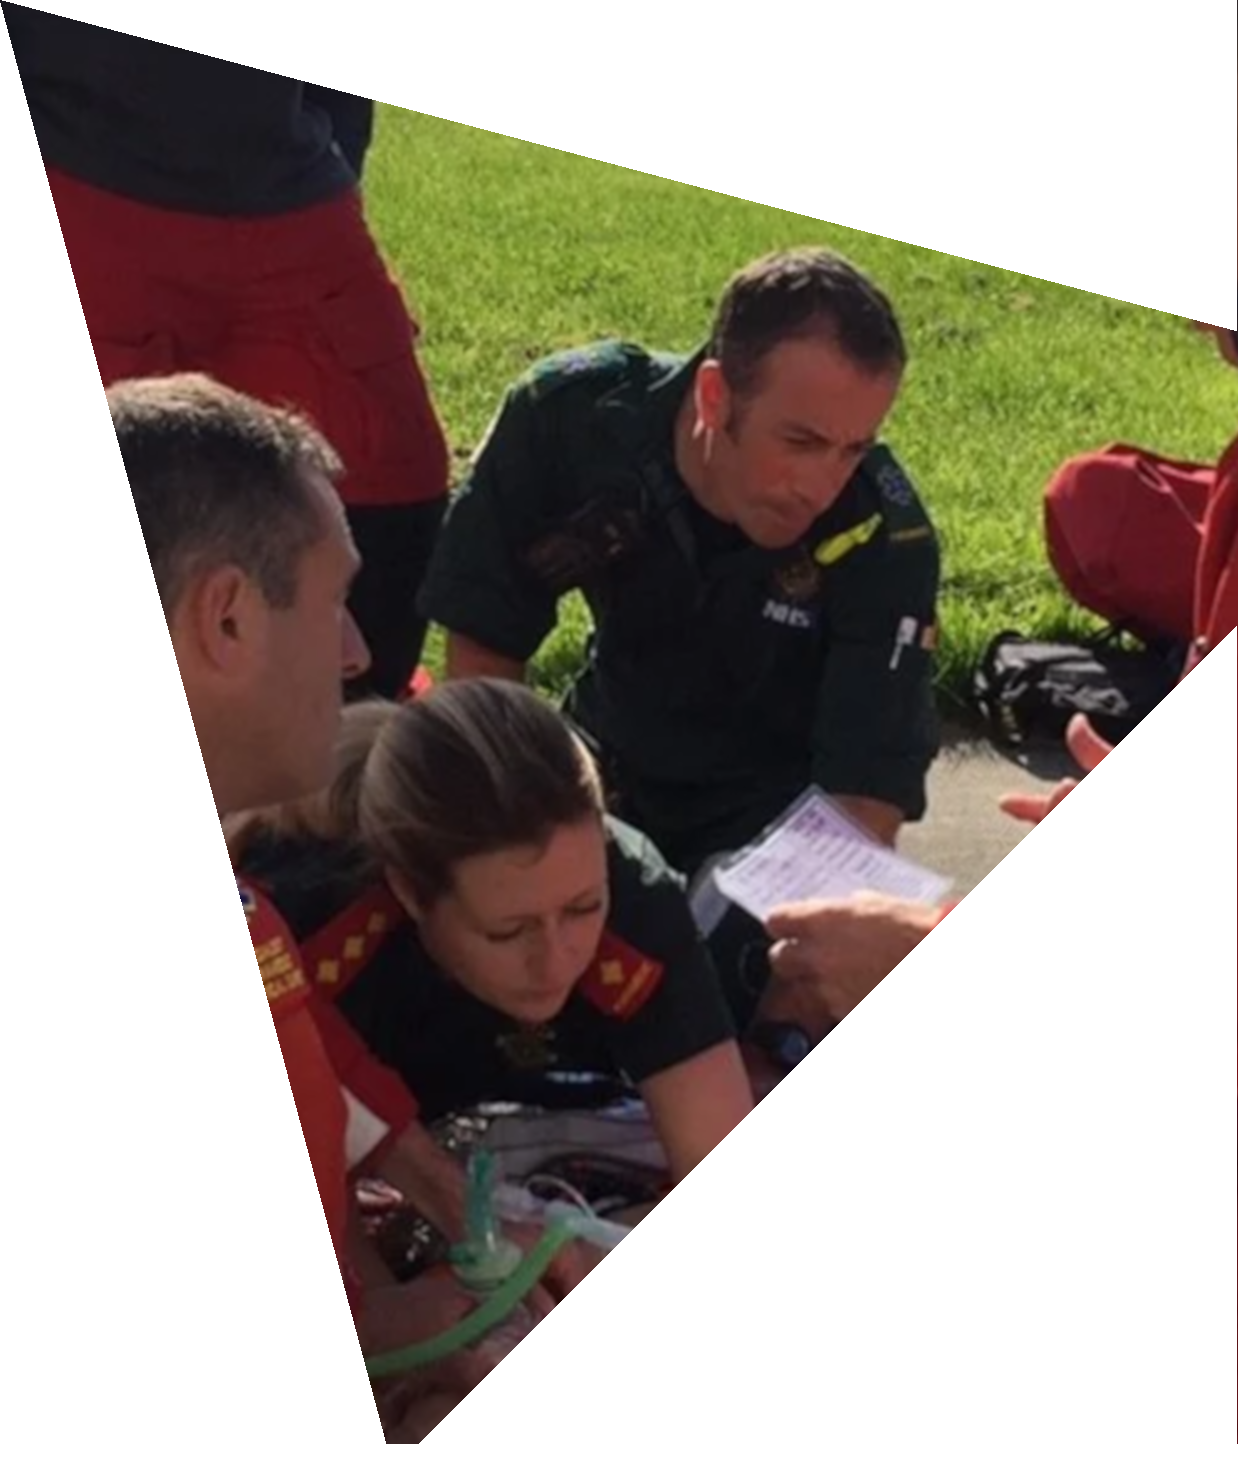 https://www.smartwolf.co.uk/wp-content/uploads/2020/10/triangle-air-ambulance-crew-treating-patient.png